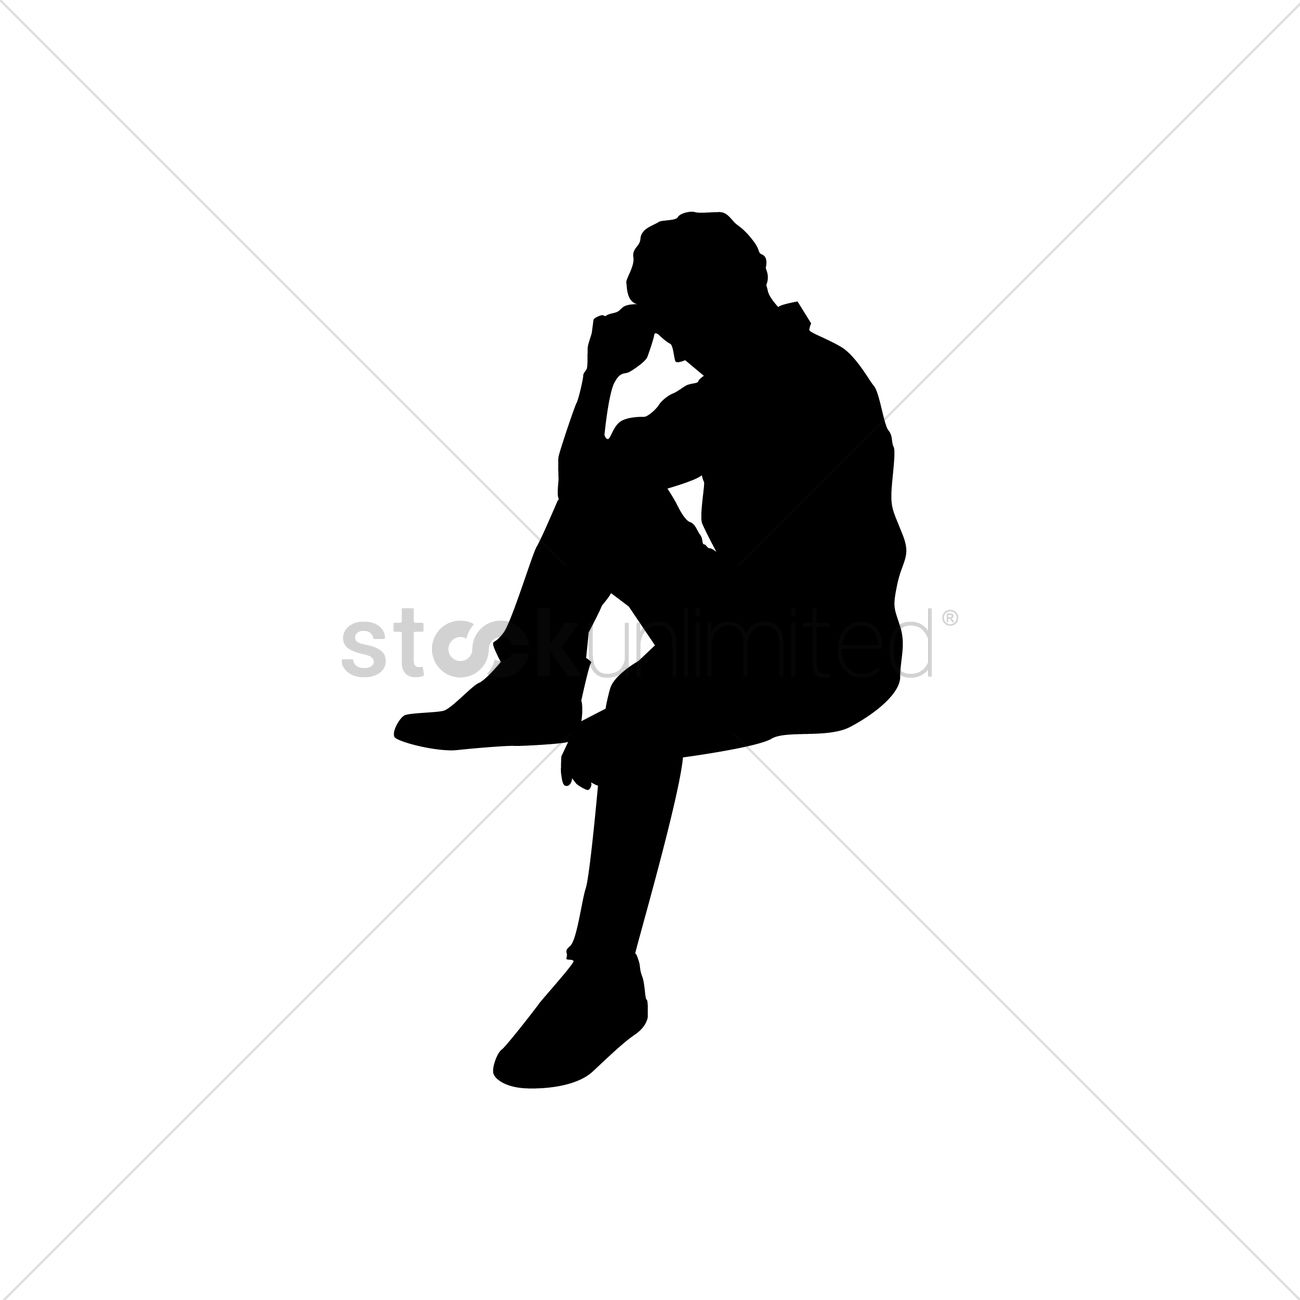 Silhouette Of Man Sitting Vector Image - 1446571 ...